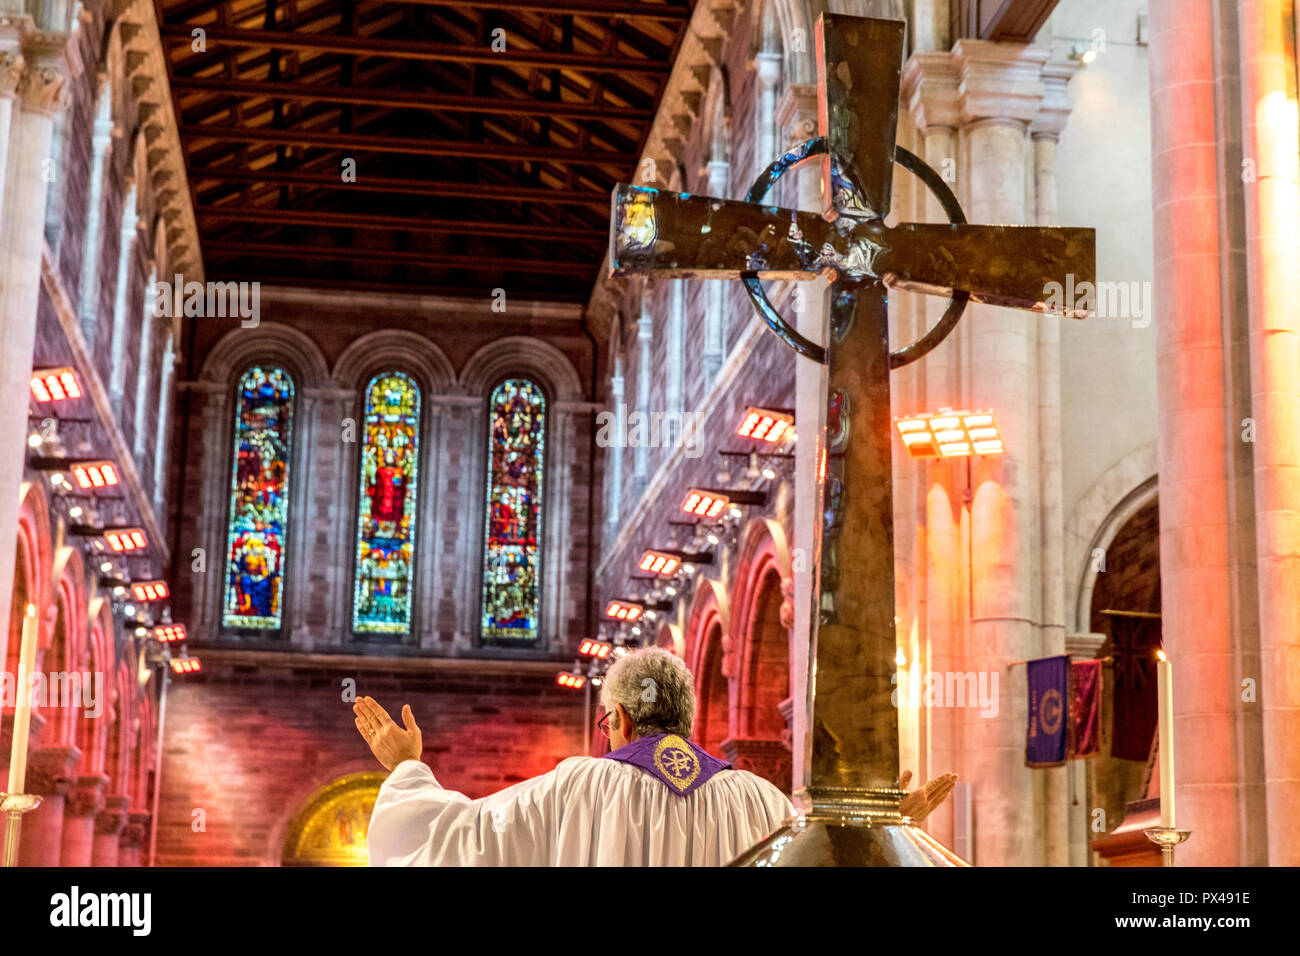 St Ann's Belfast protestant cathedral, Northern Ireland. Sunday service. Ulster, U.K. - Stock Image